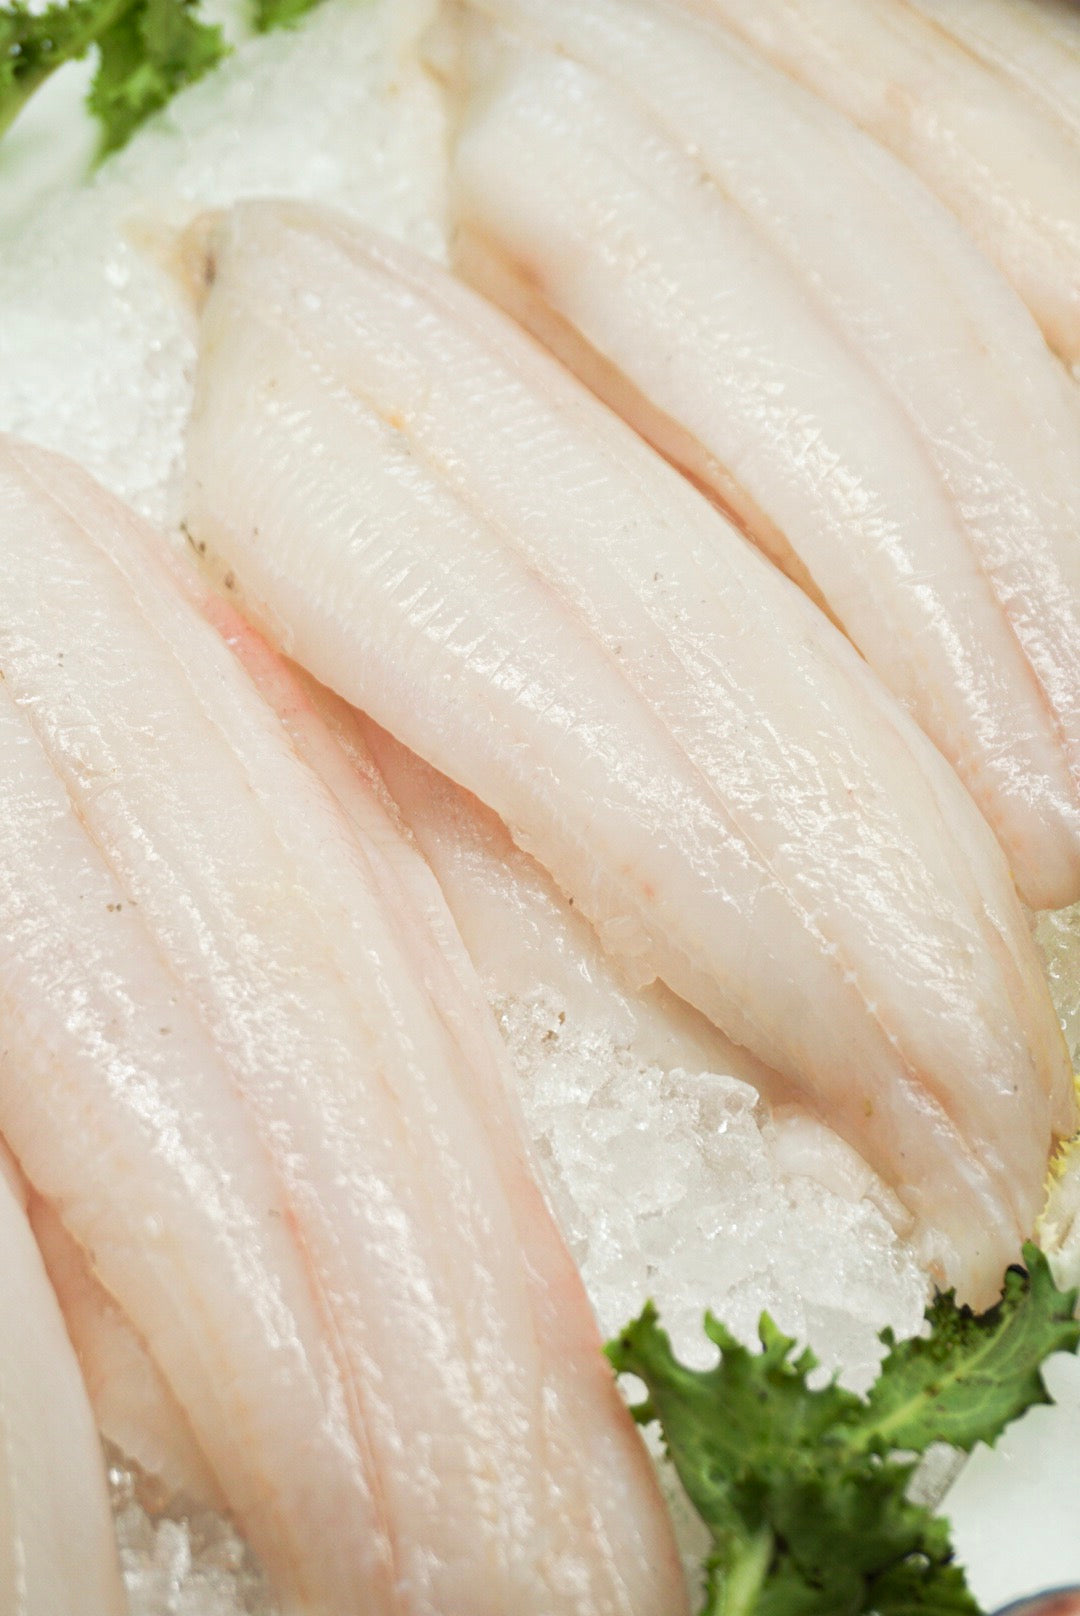 Grey Sole Fillet - Delivery